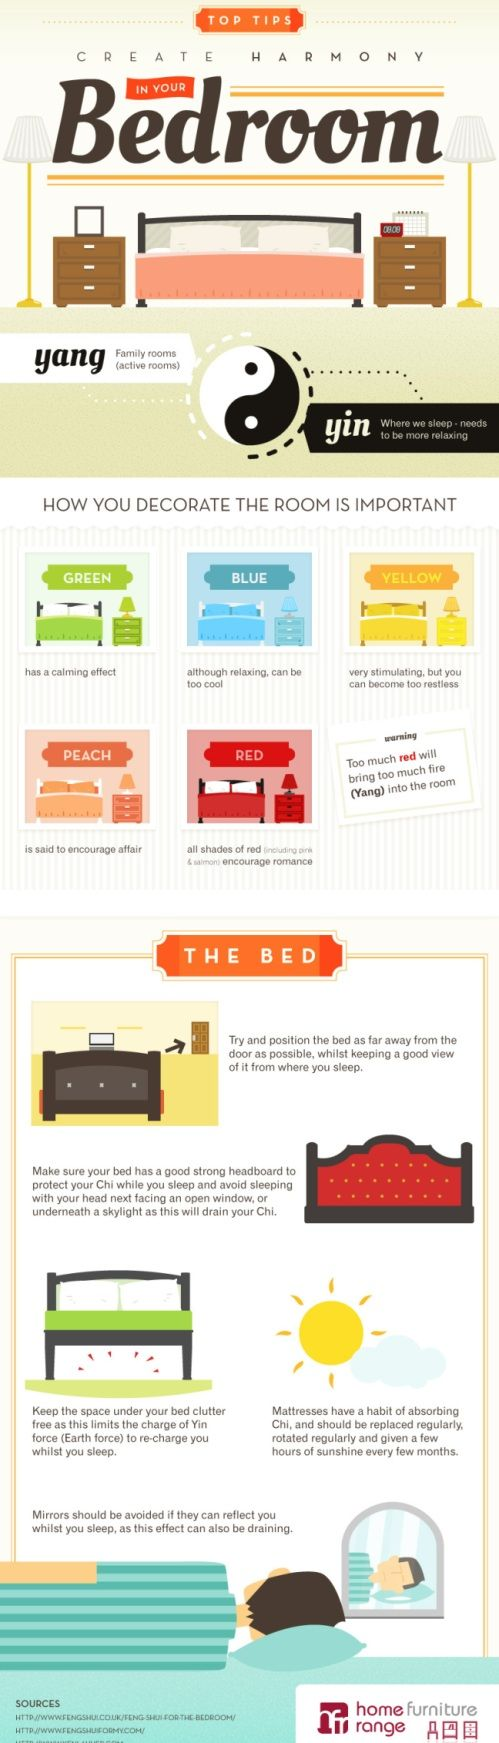 feng shui your bedroom  I like the color idea! I'm going to look into grey.